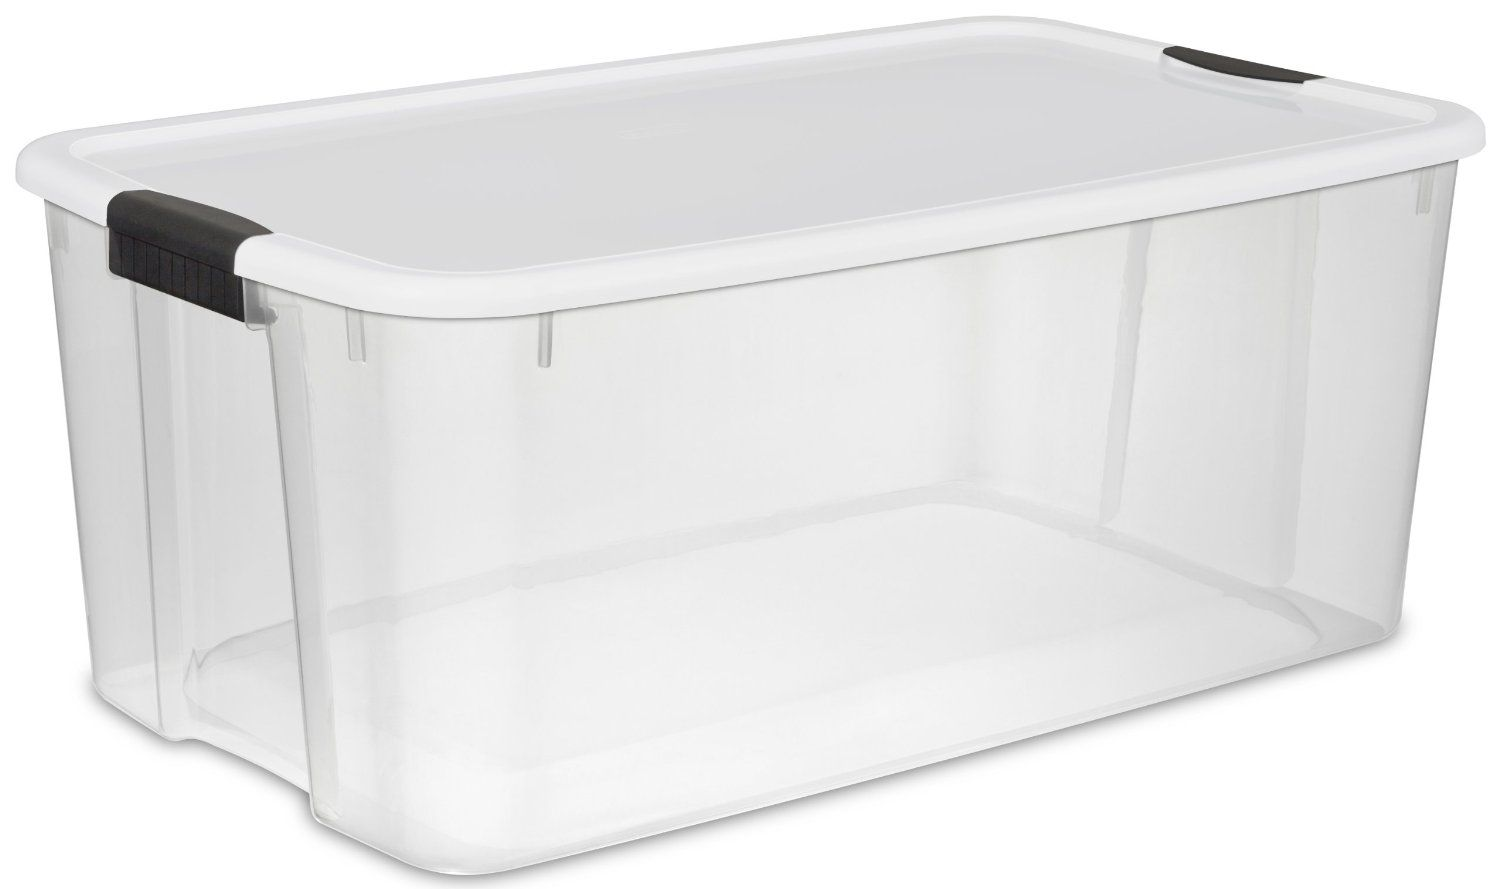 Amazon Com Sterilite 19909806 116 Quart Ultra Storage Box See Through With White Lid And Black Latches 4 Pack Lidded Home S Sterilite Storage Bins Storage